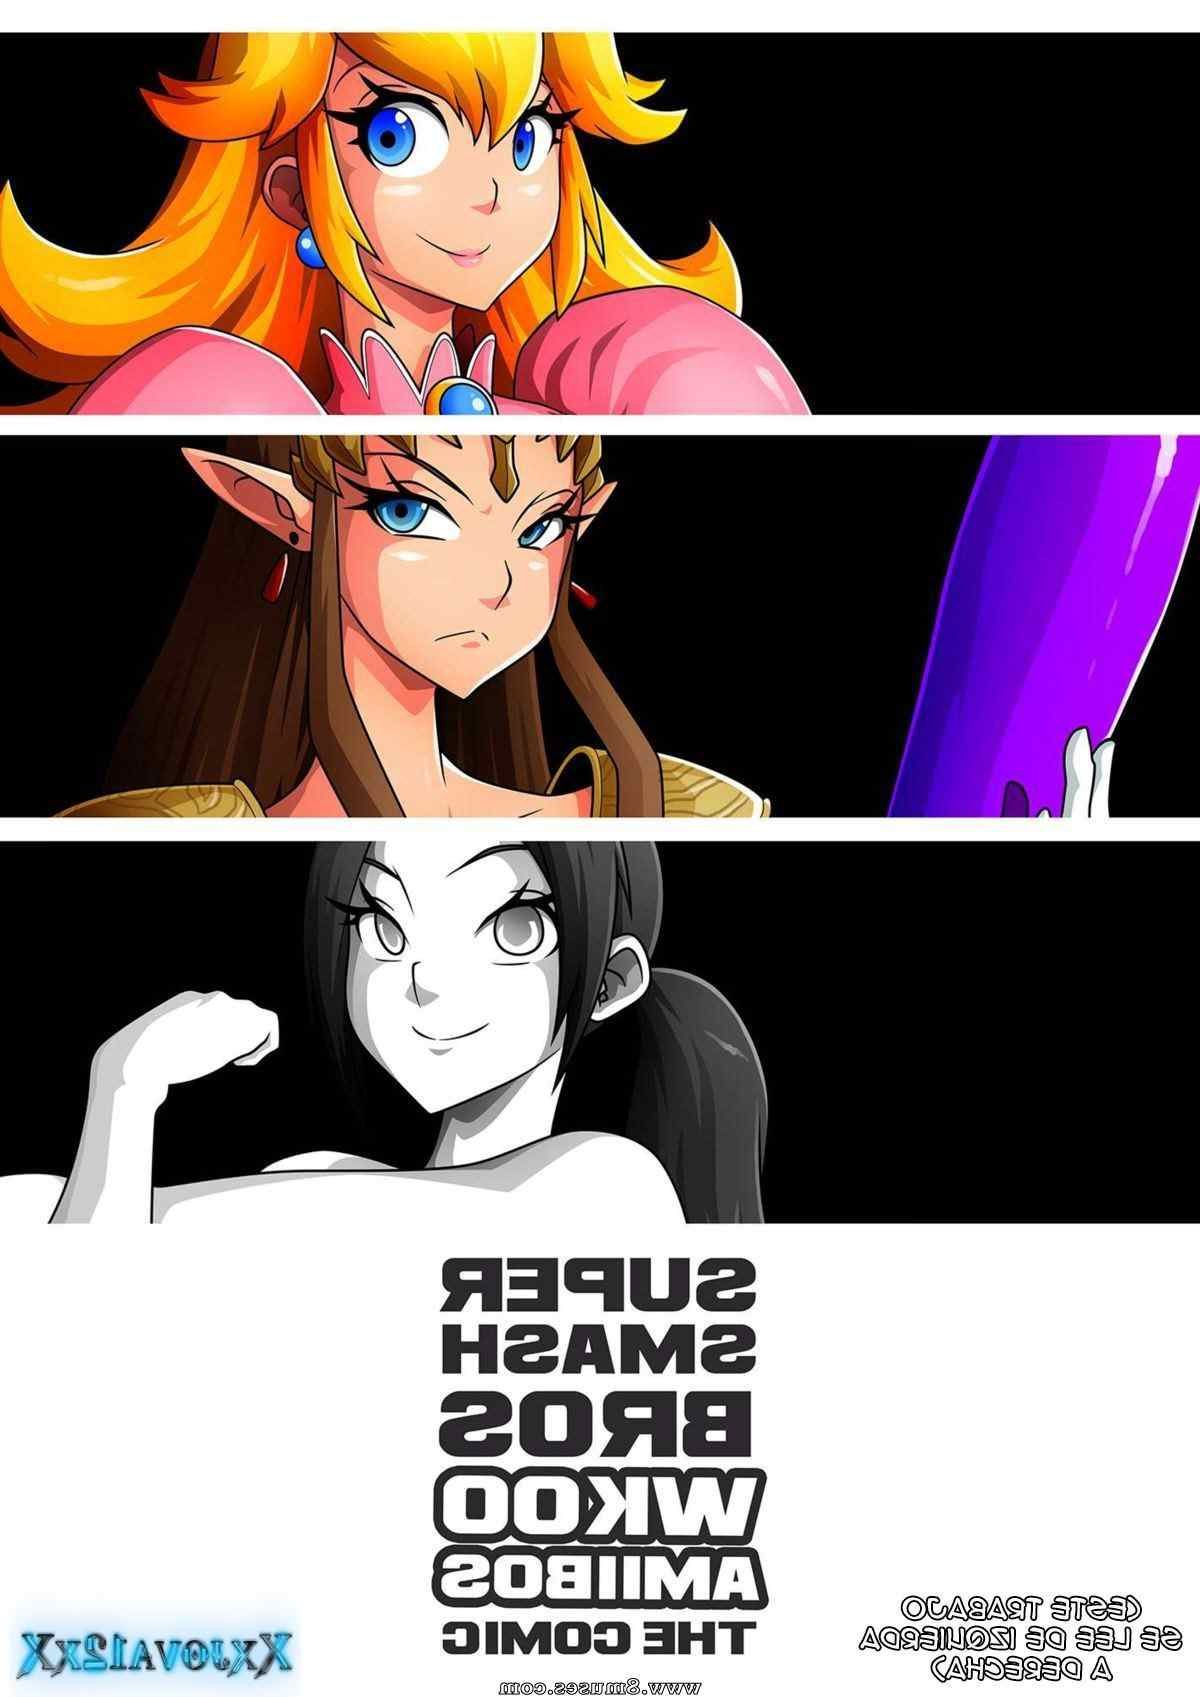 Witchking00-Comics/Super-Smash-Bros Super_Smash_Bros__8muses_-_Sex_and_Porn_Comics.jpg